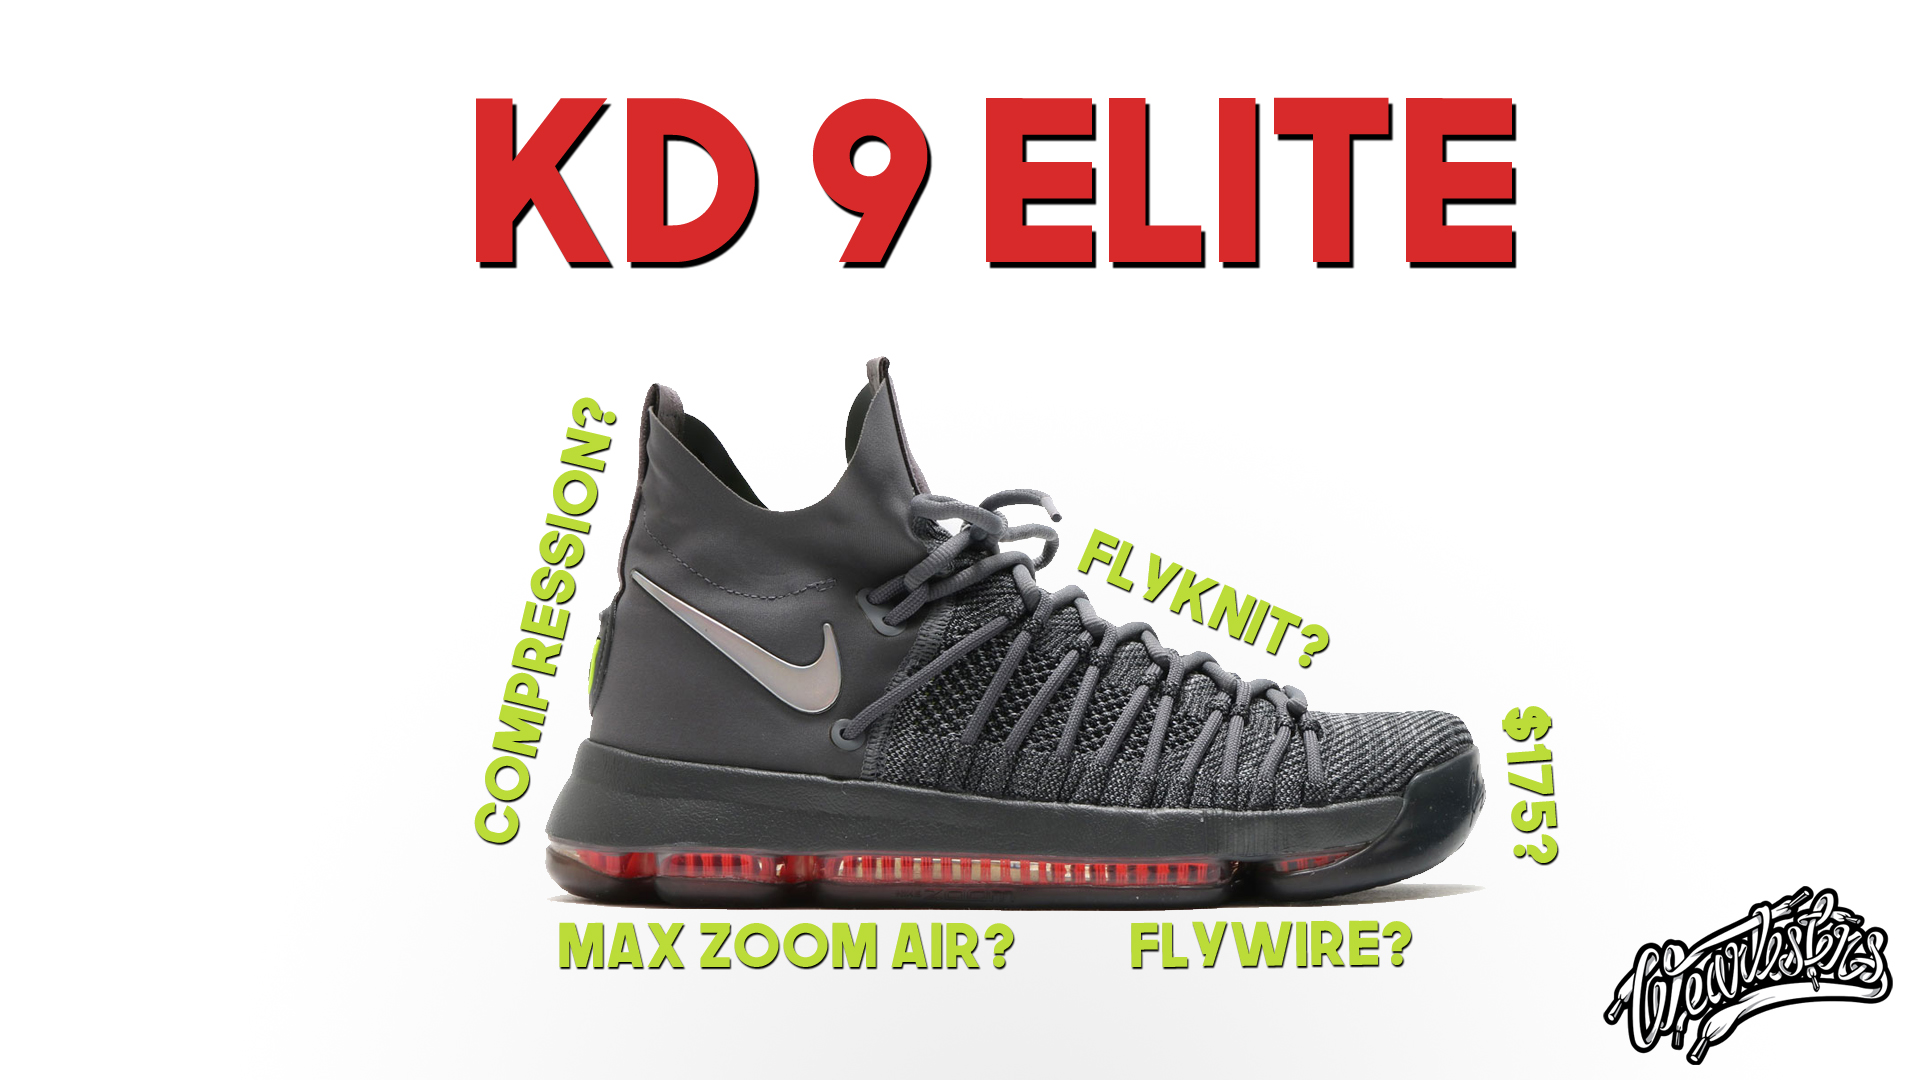 new style 6aa9f 674a7 ... uk your best look yet at the upcoming nike kd 9 elite weartesters 5f25e  932f1